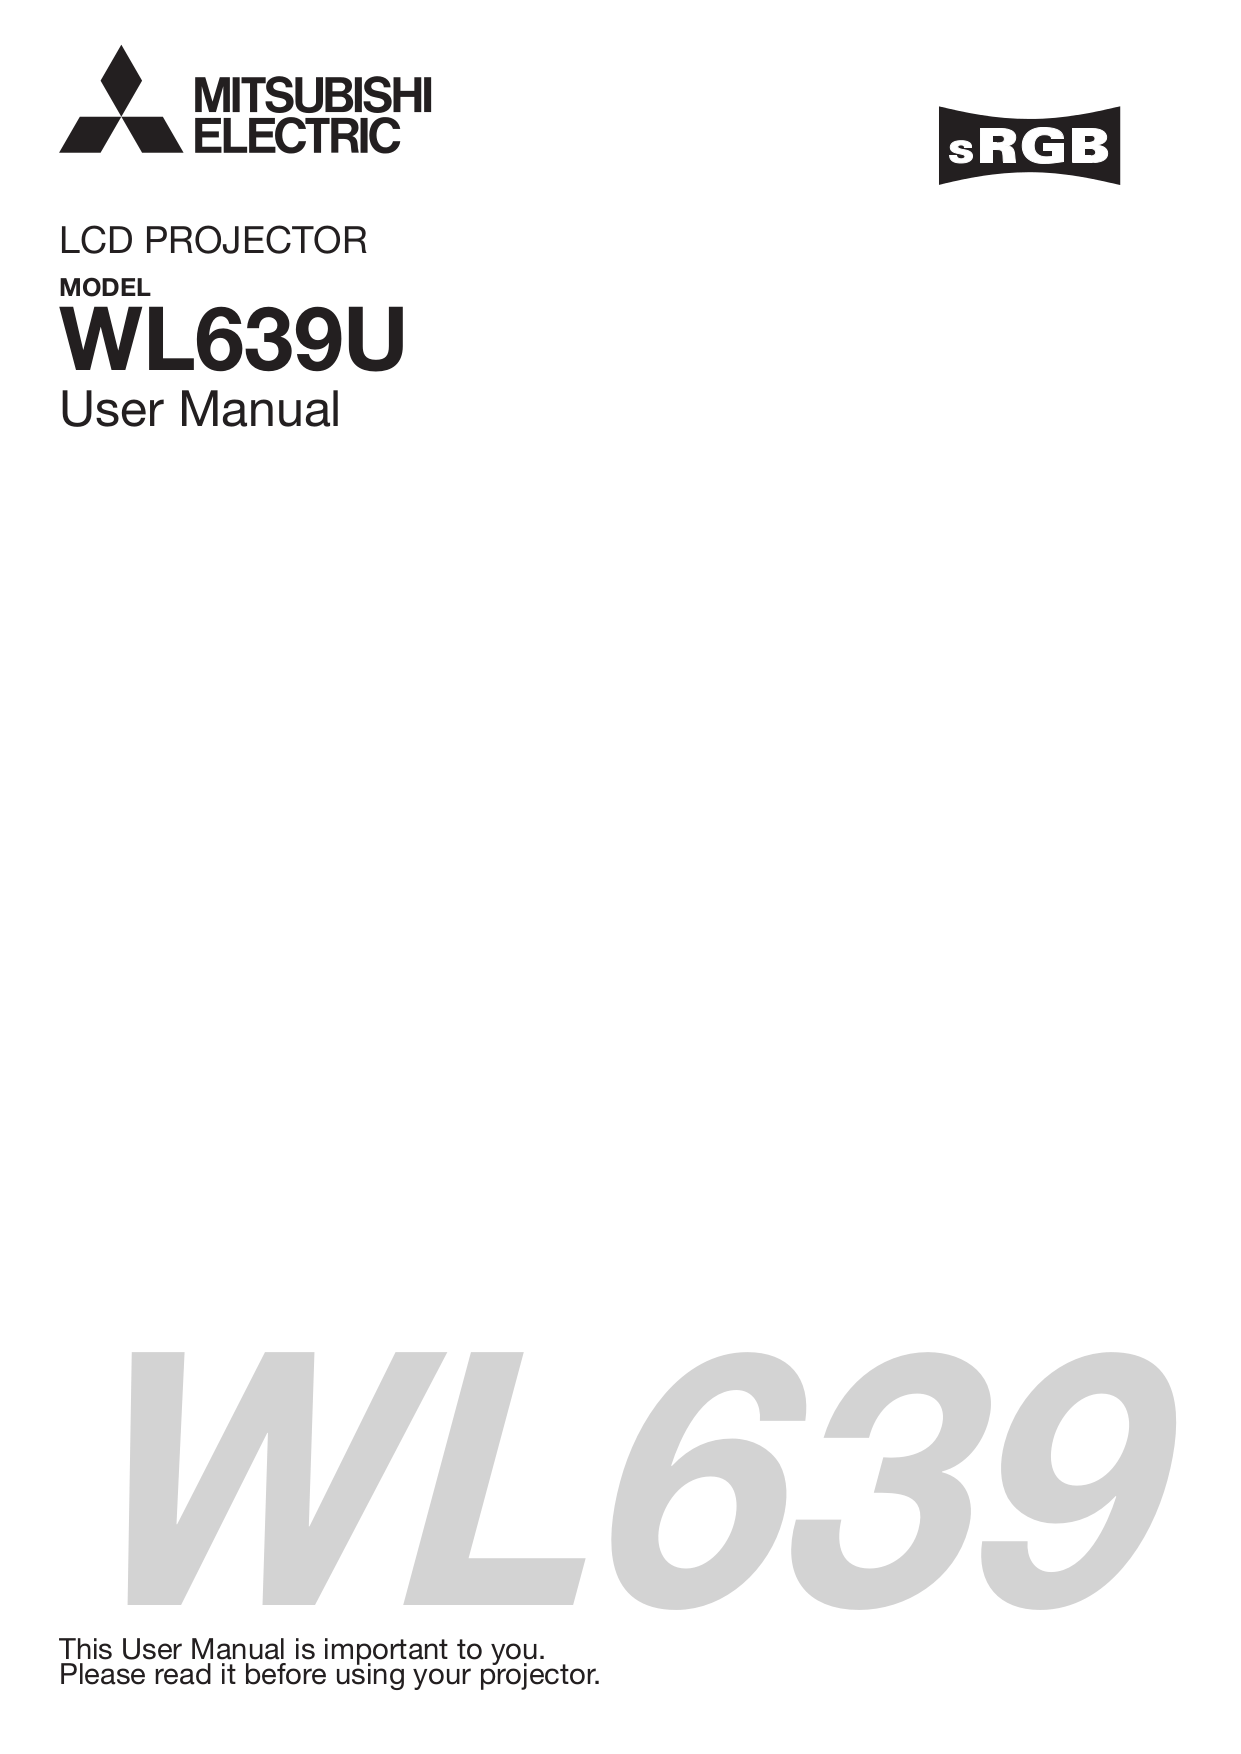 Download free pdf for Mitsubishi WL639U Projector manual